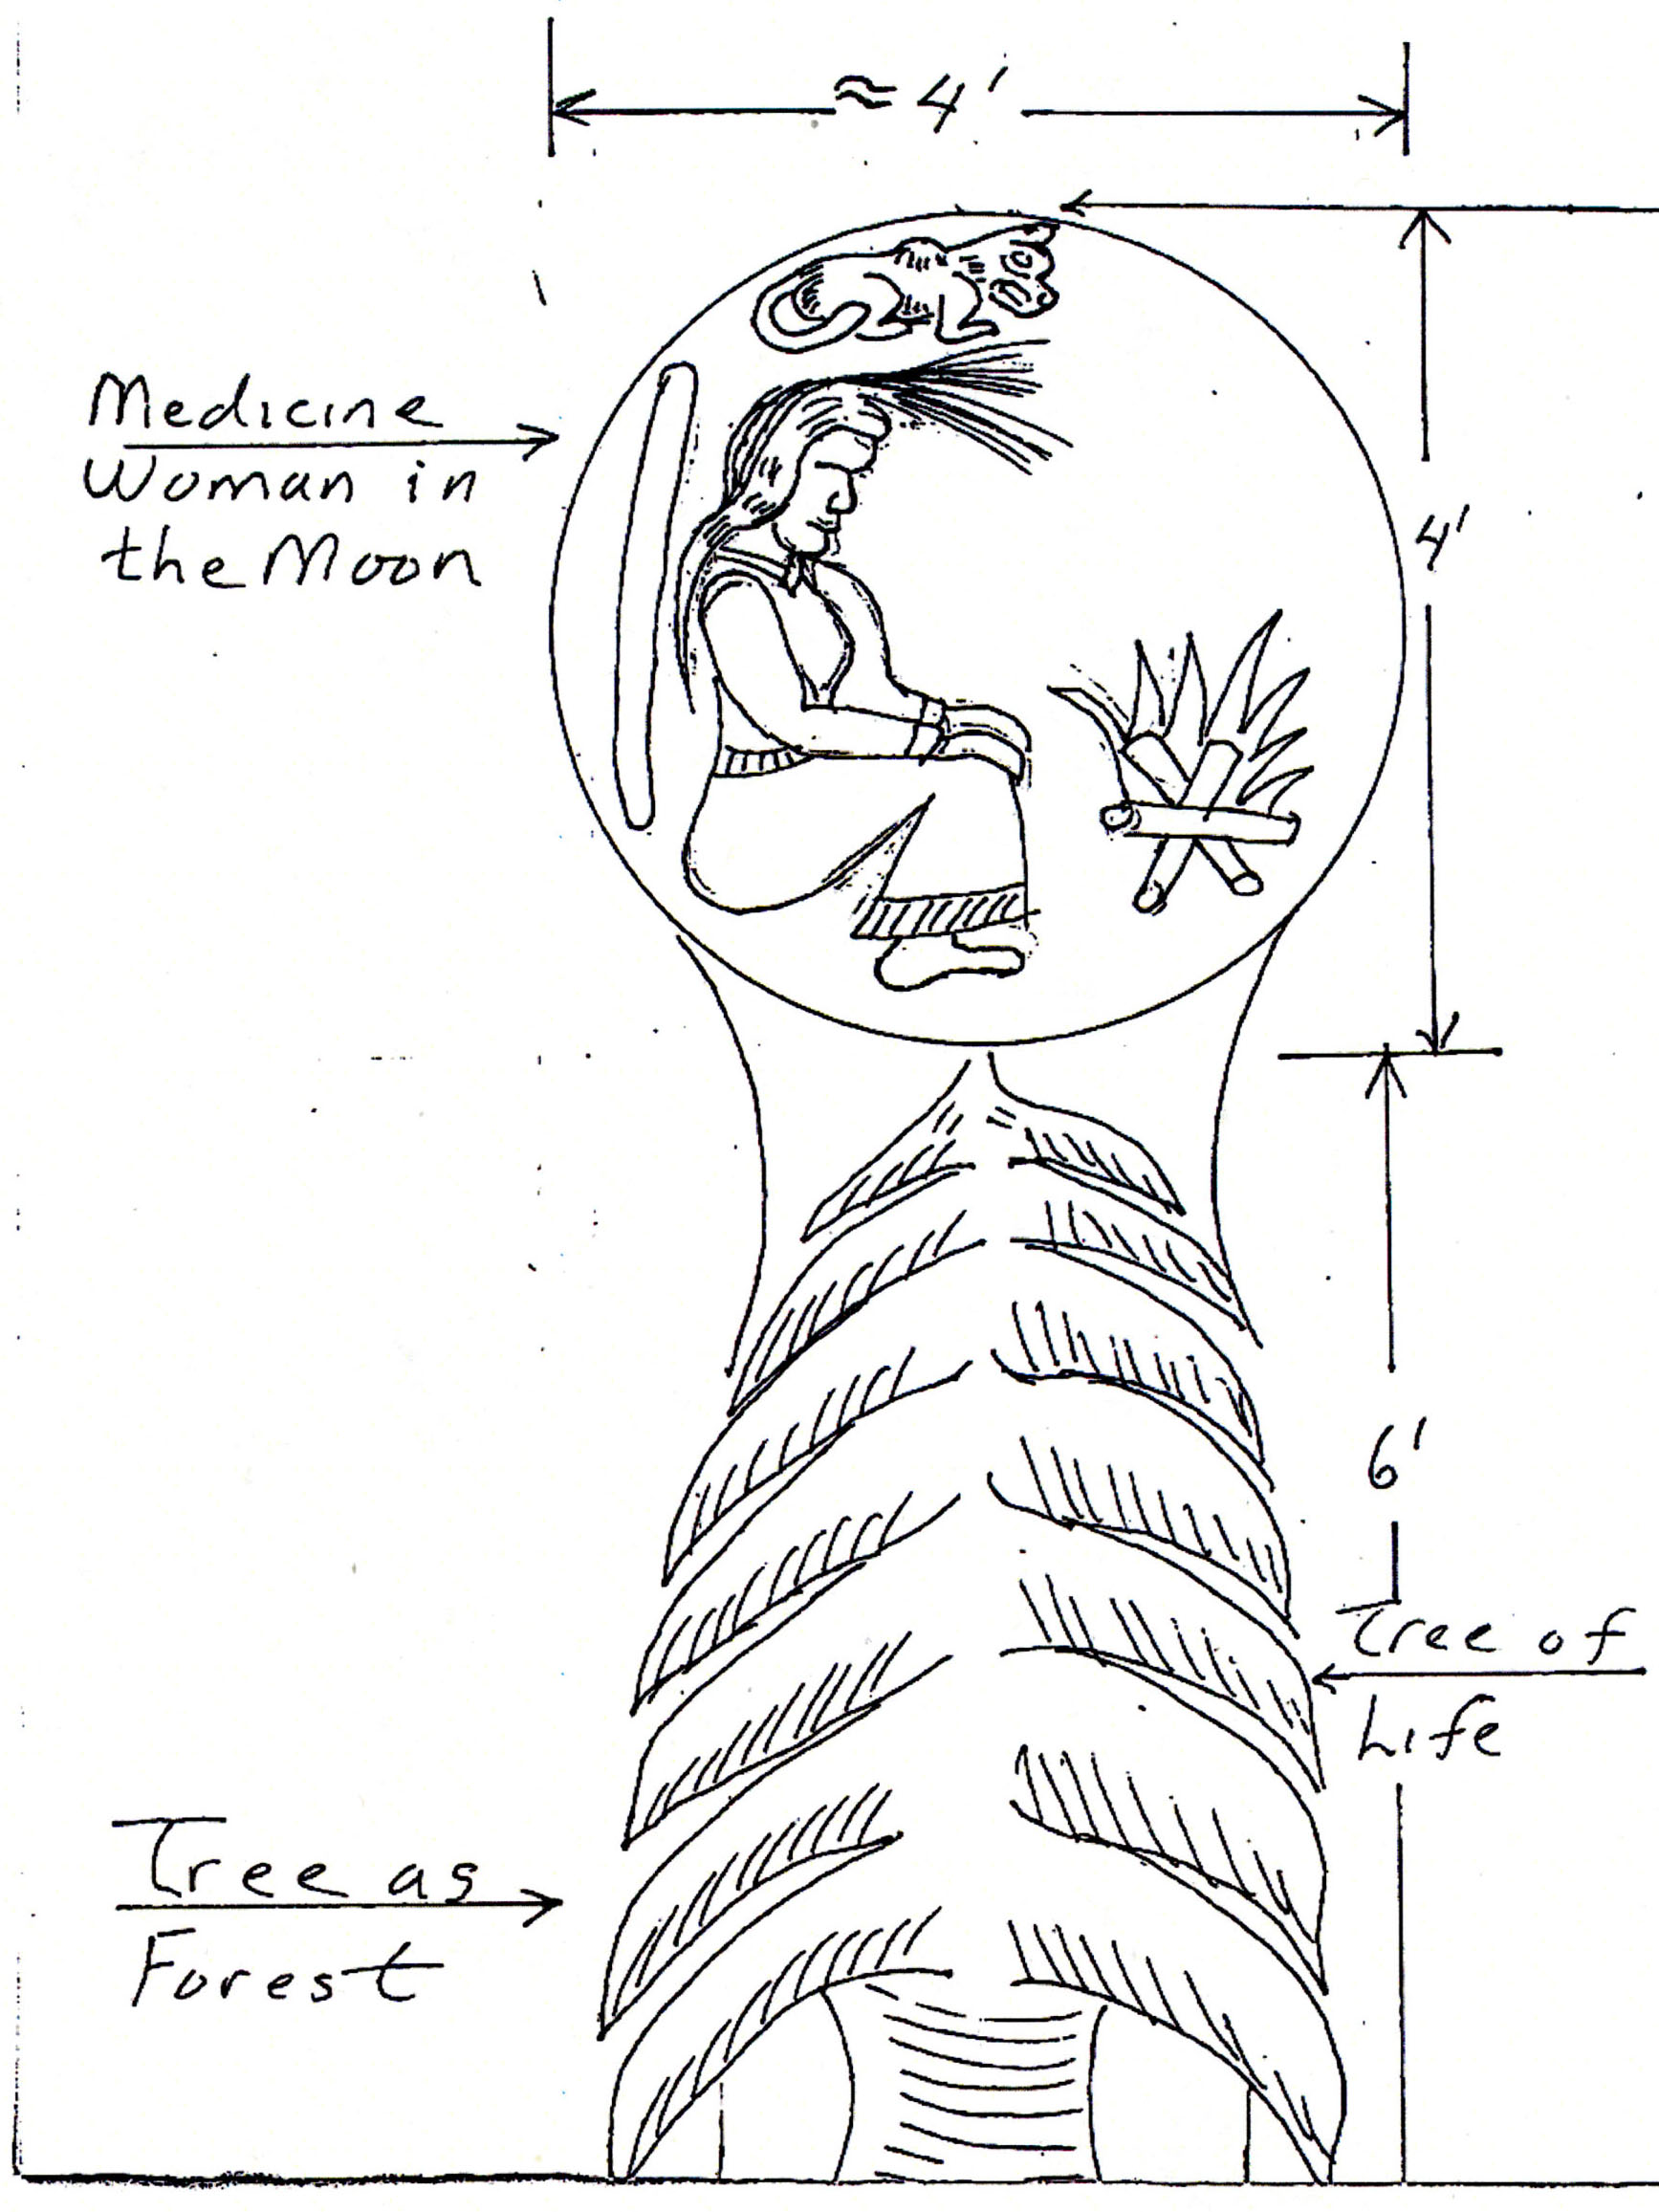 Meaning and symbols in the NLM healing totem